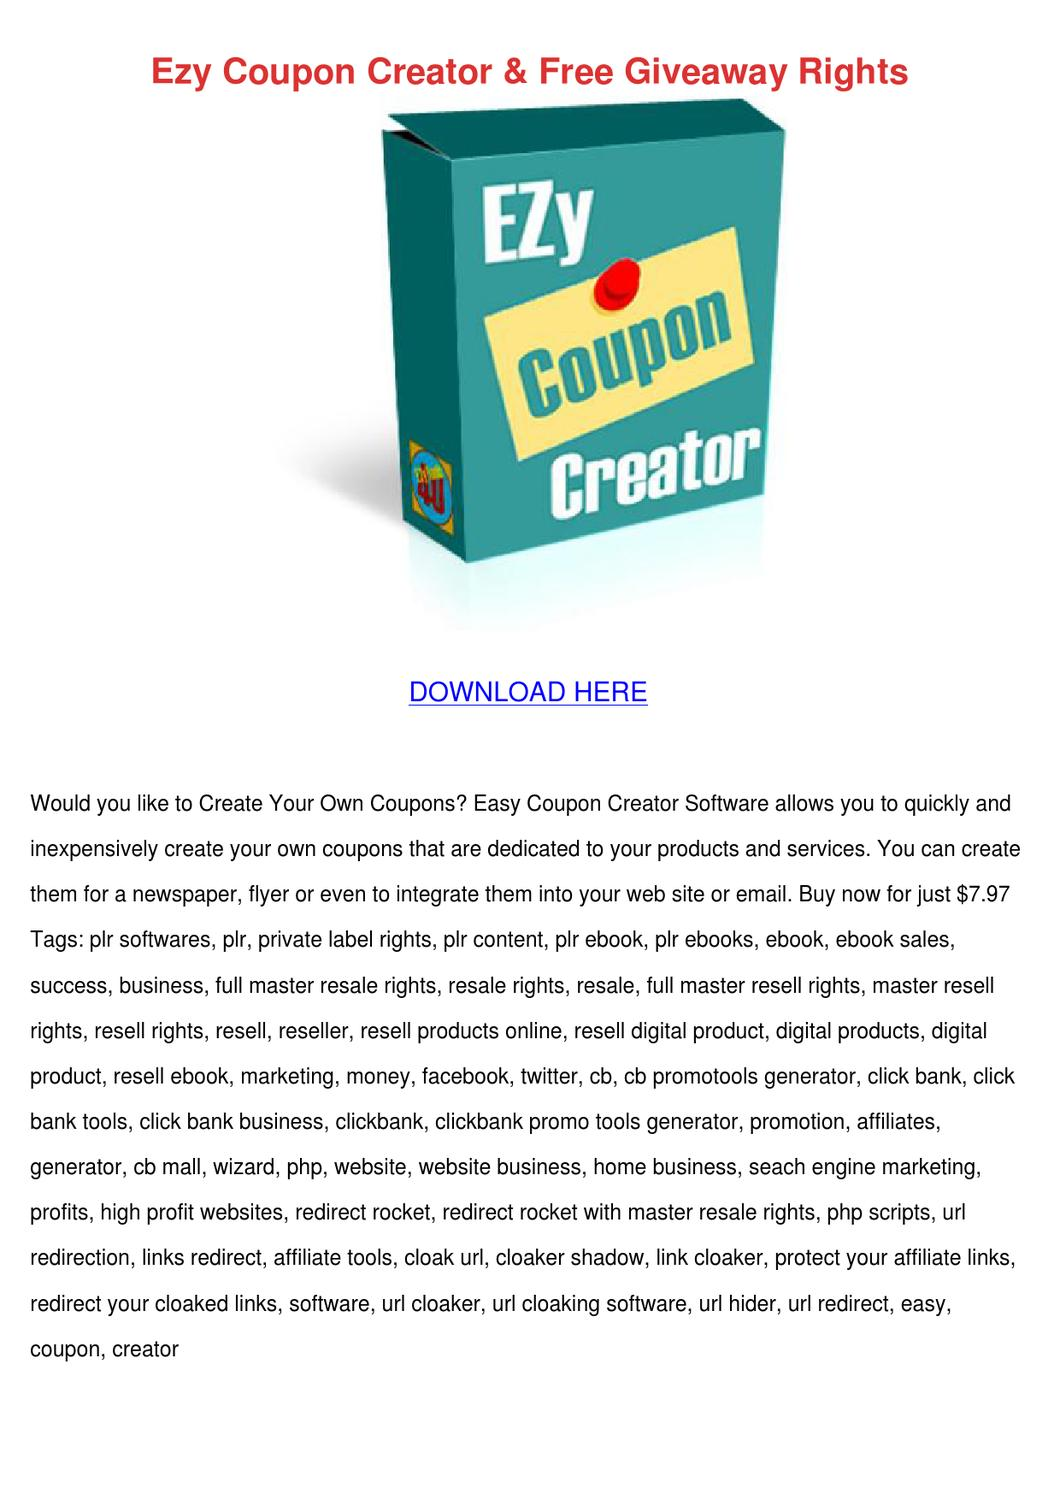 ezy coupon creator free giveaway rights by lucakeefe issuu